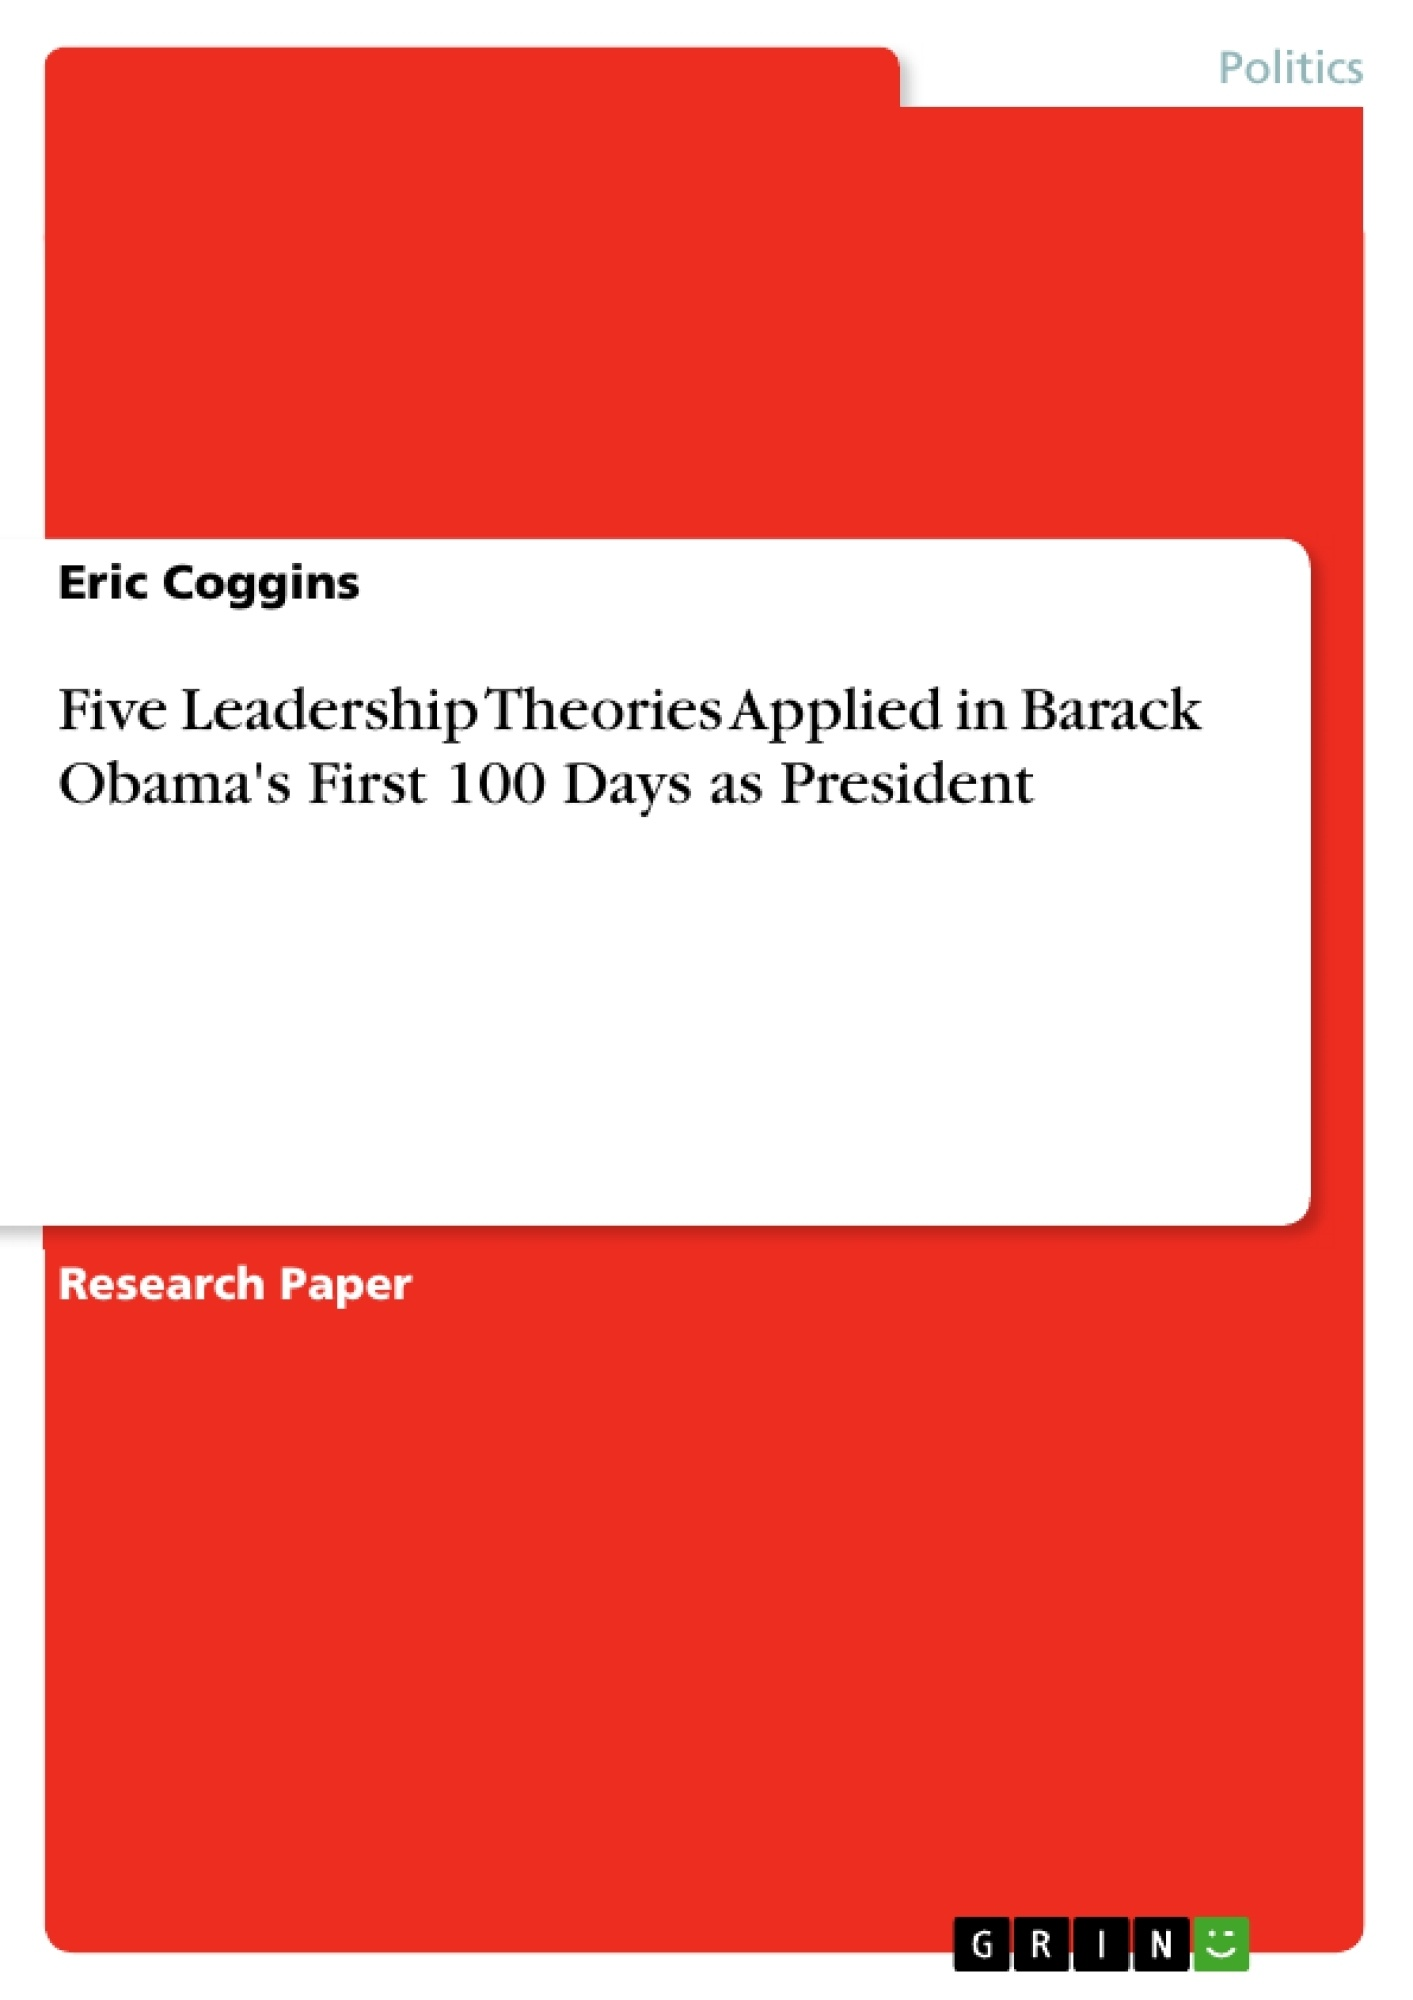 Title: Five Leadership Theories Applied in Barack Obama's First 100 Days as President